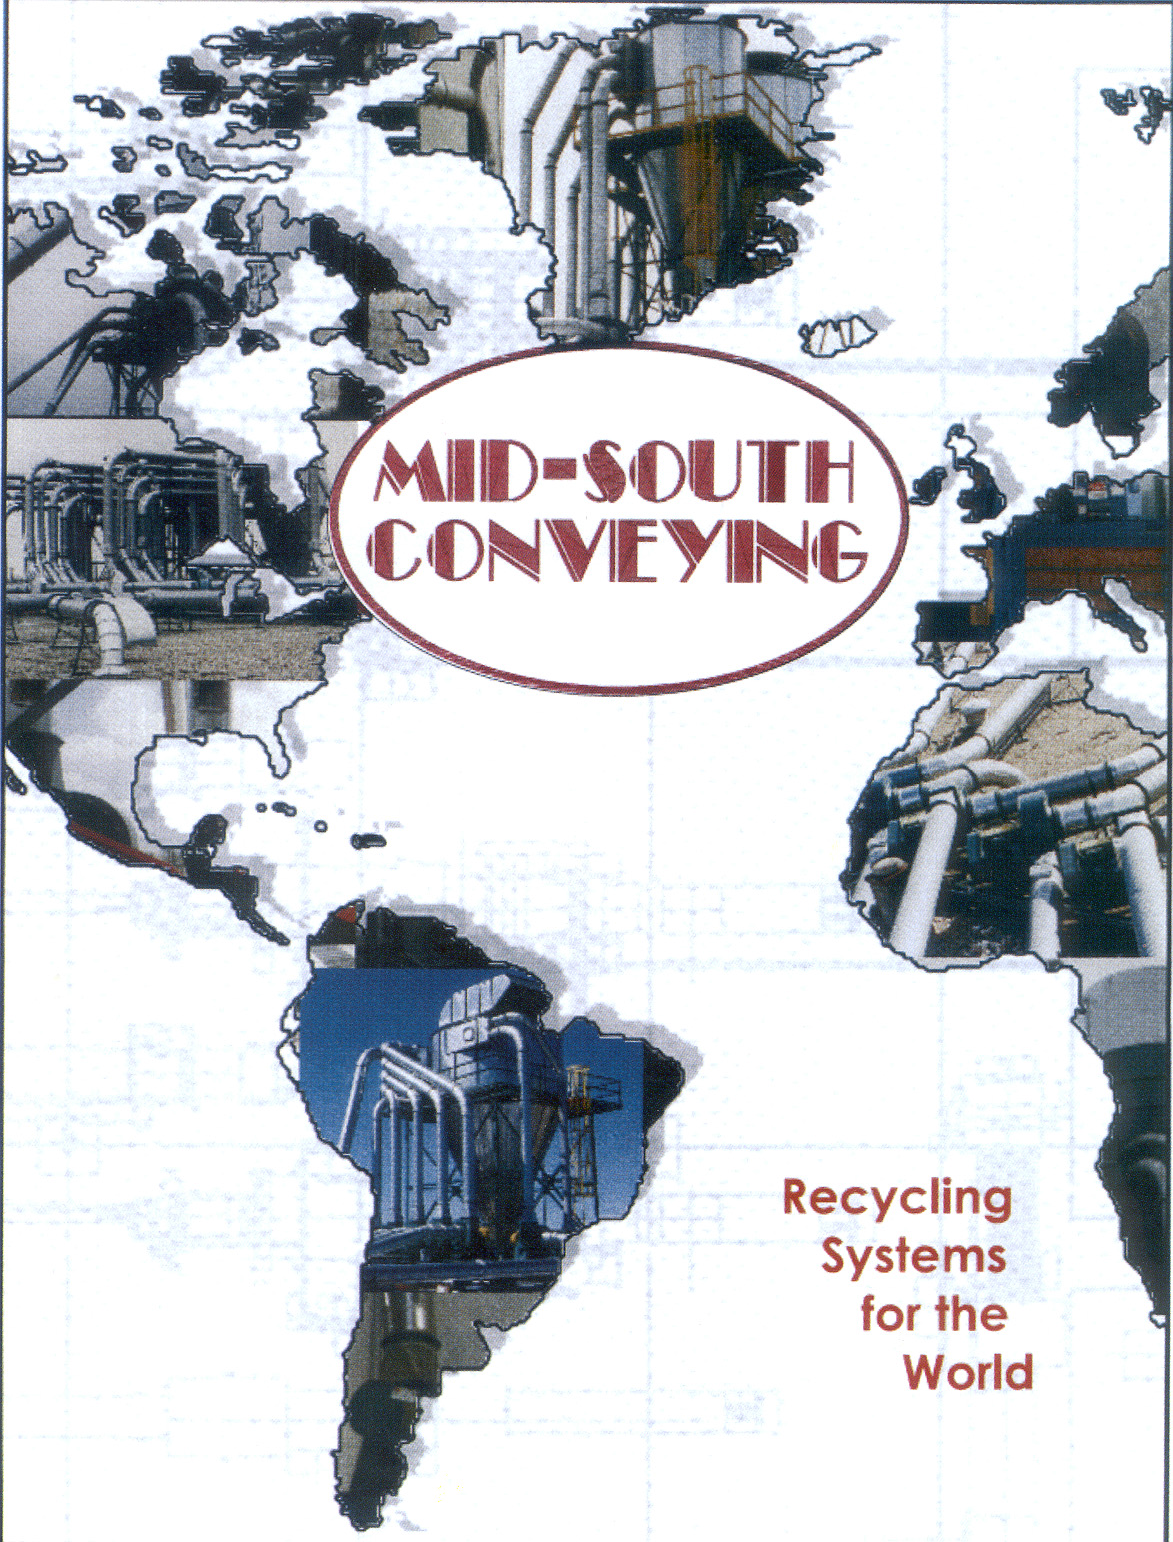 Learn more about the Cyclone in the Midsouth Conveying brochure.